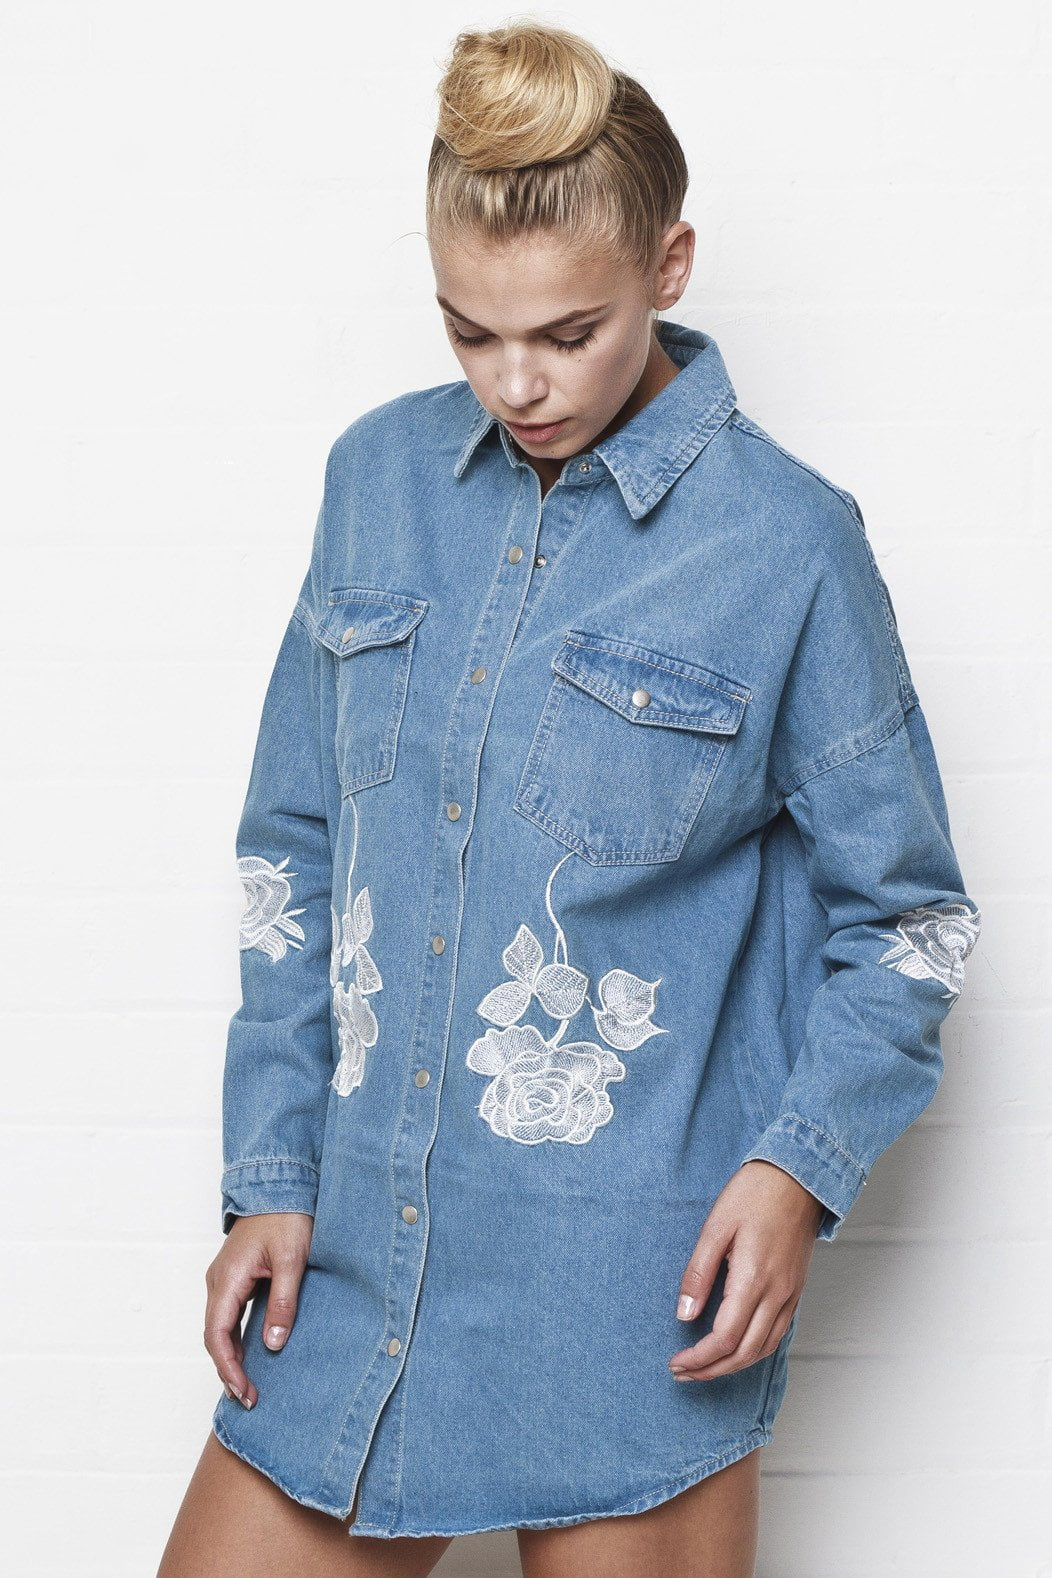 Liquor n Poker - Texas Rose oversized embroidered denim shirt - Liquor N Poker  Liquor N Poker